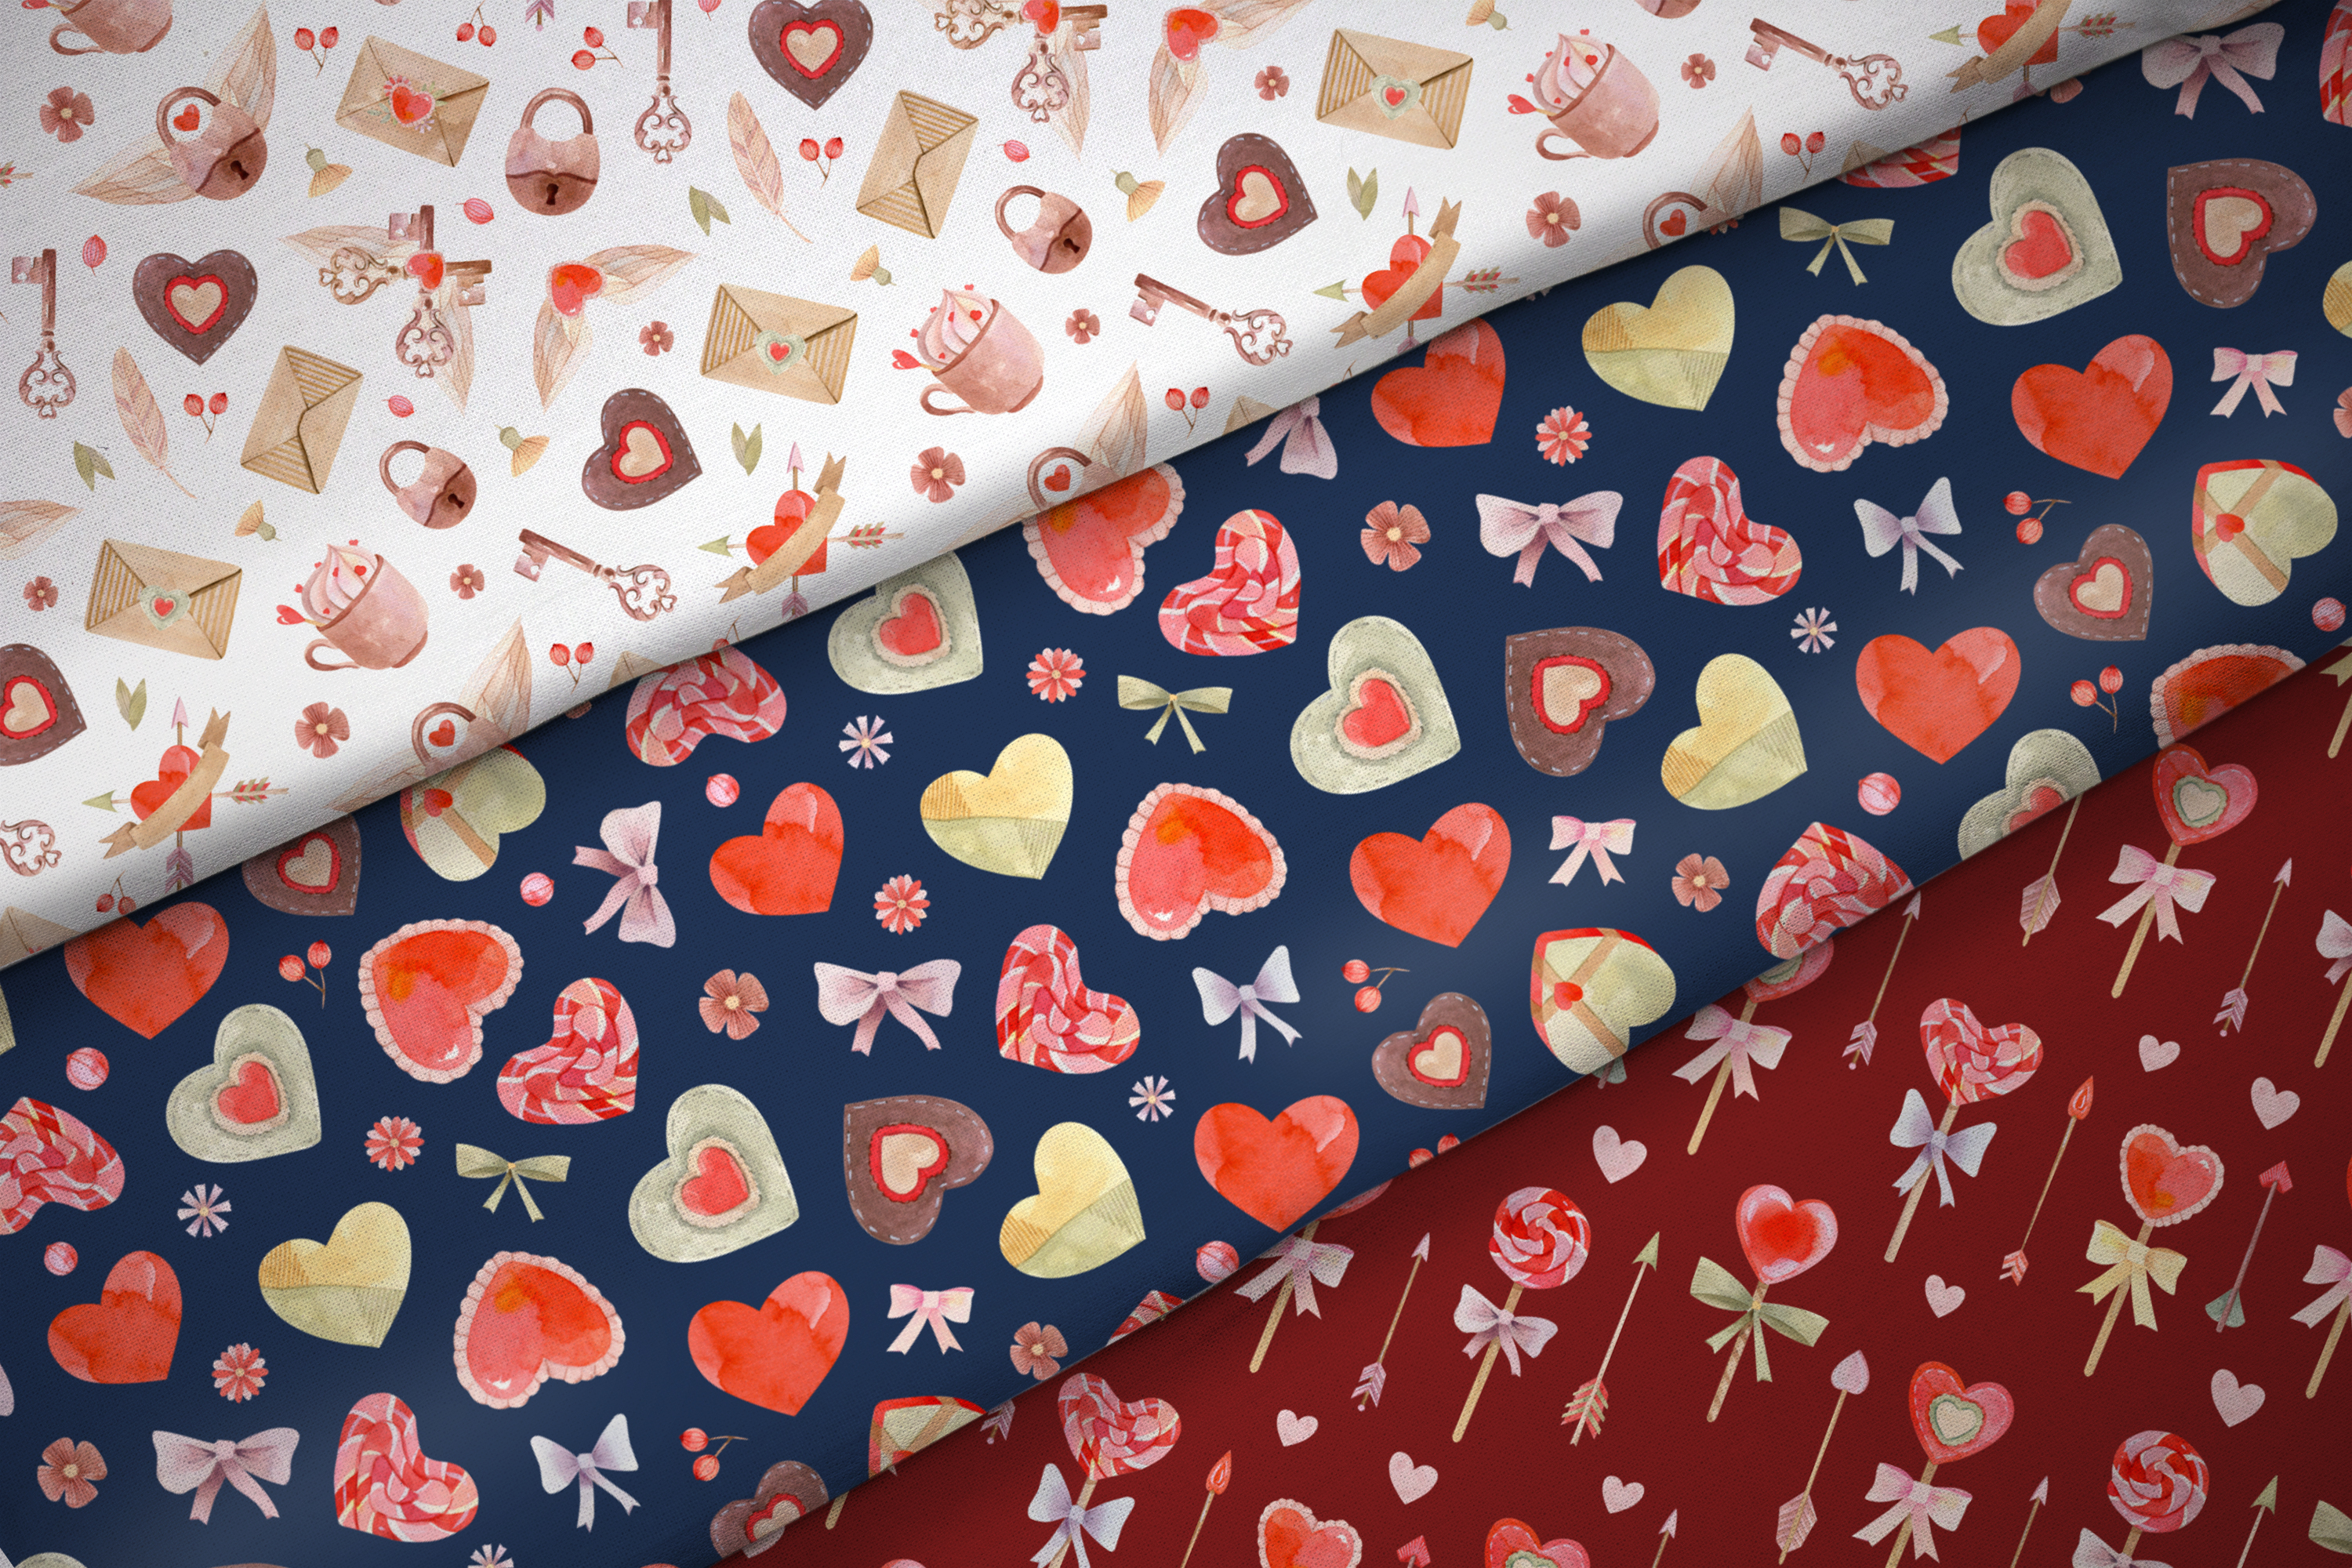 Valentines Day Seamless Patterns example image 10